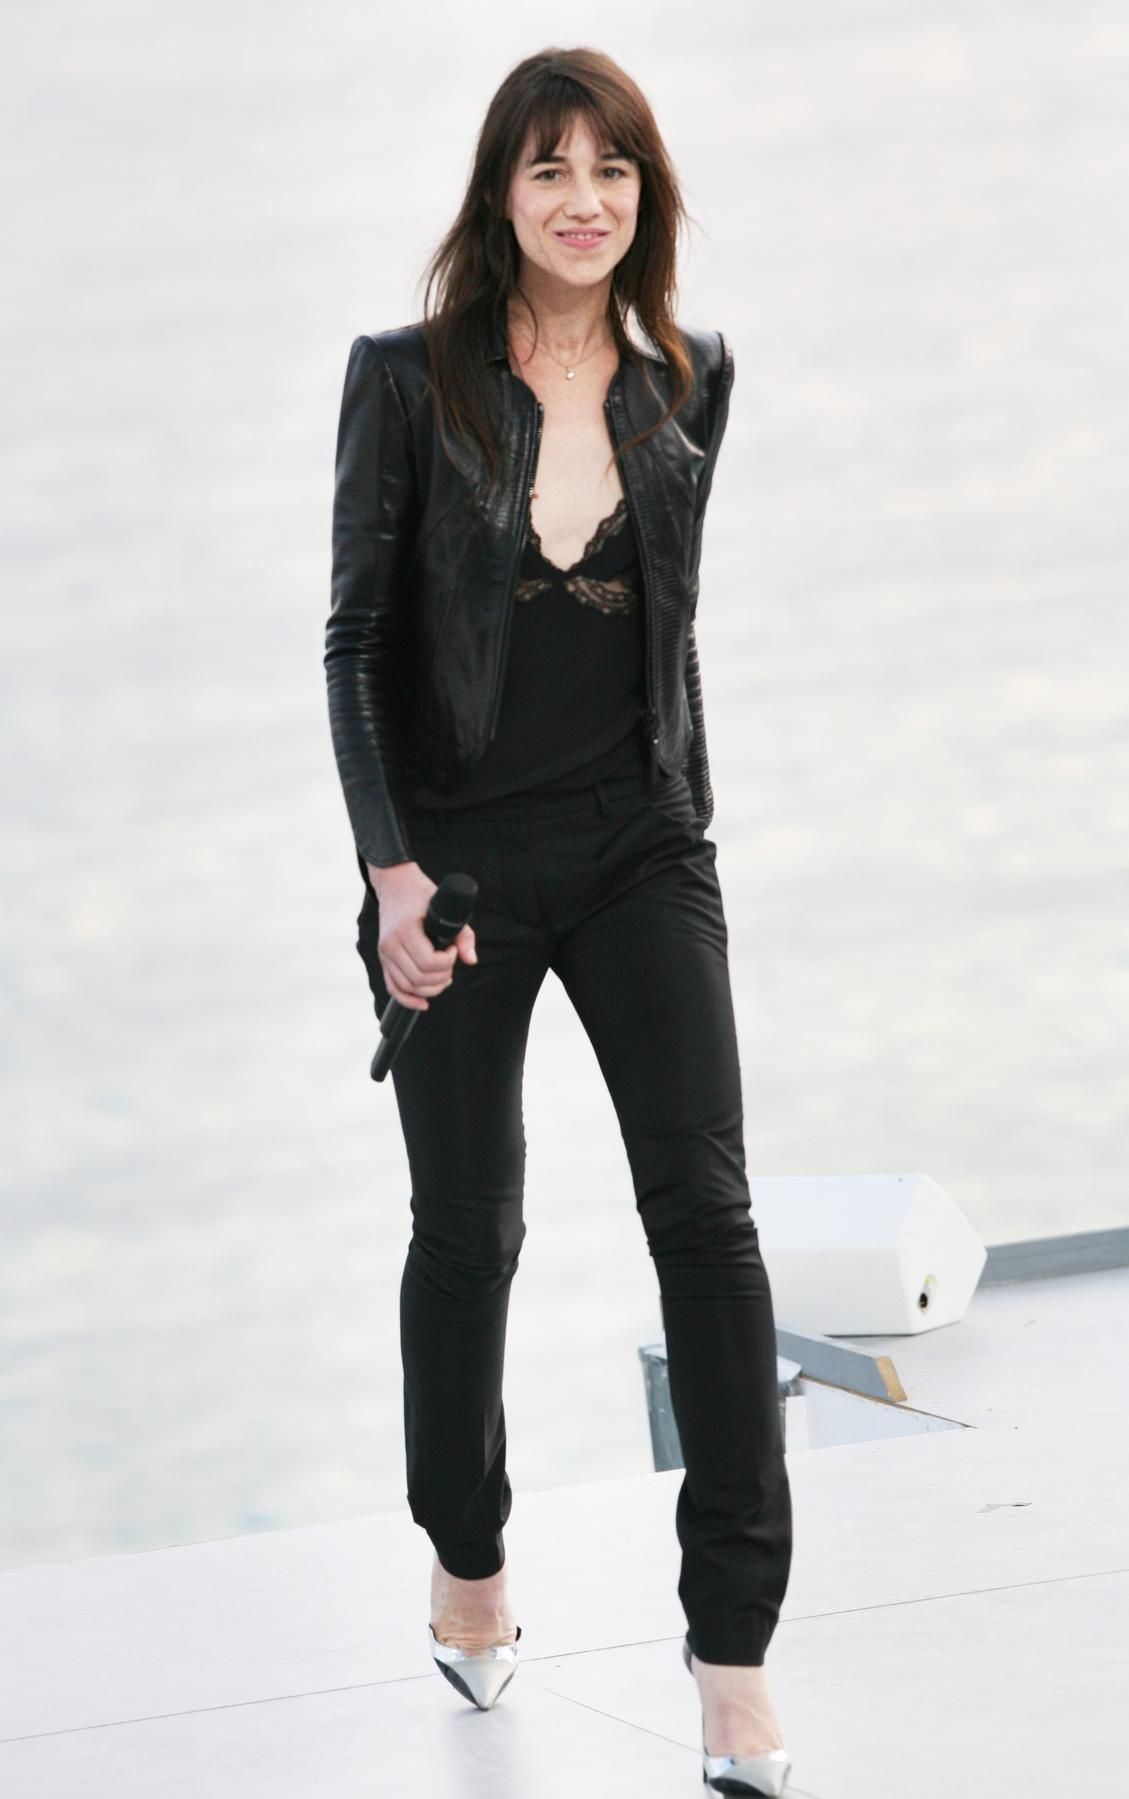 Celebrites Charlotte Gainsbourg naked (29 foto and video), Pussy, Bikini, Instagram, swimsuit 2019